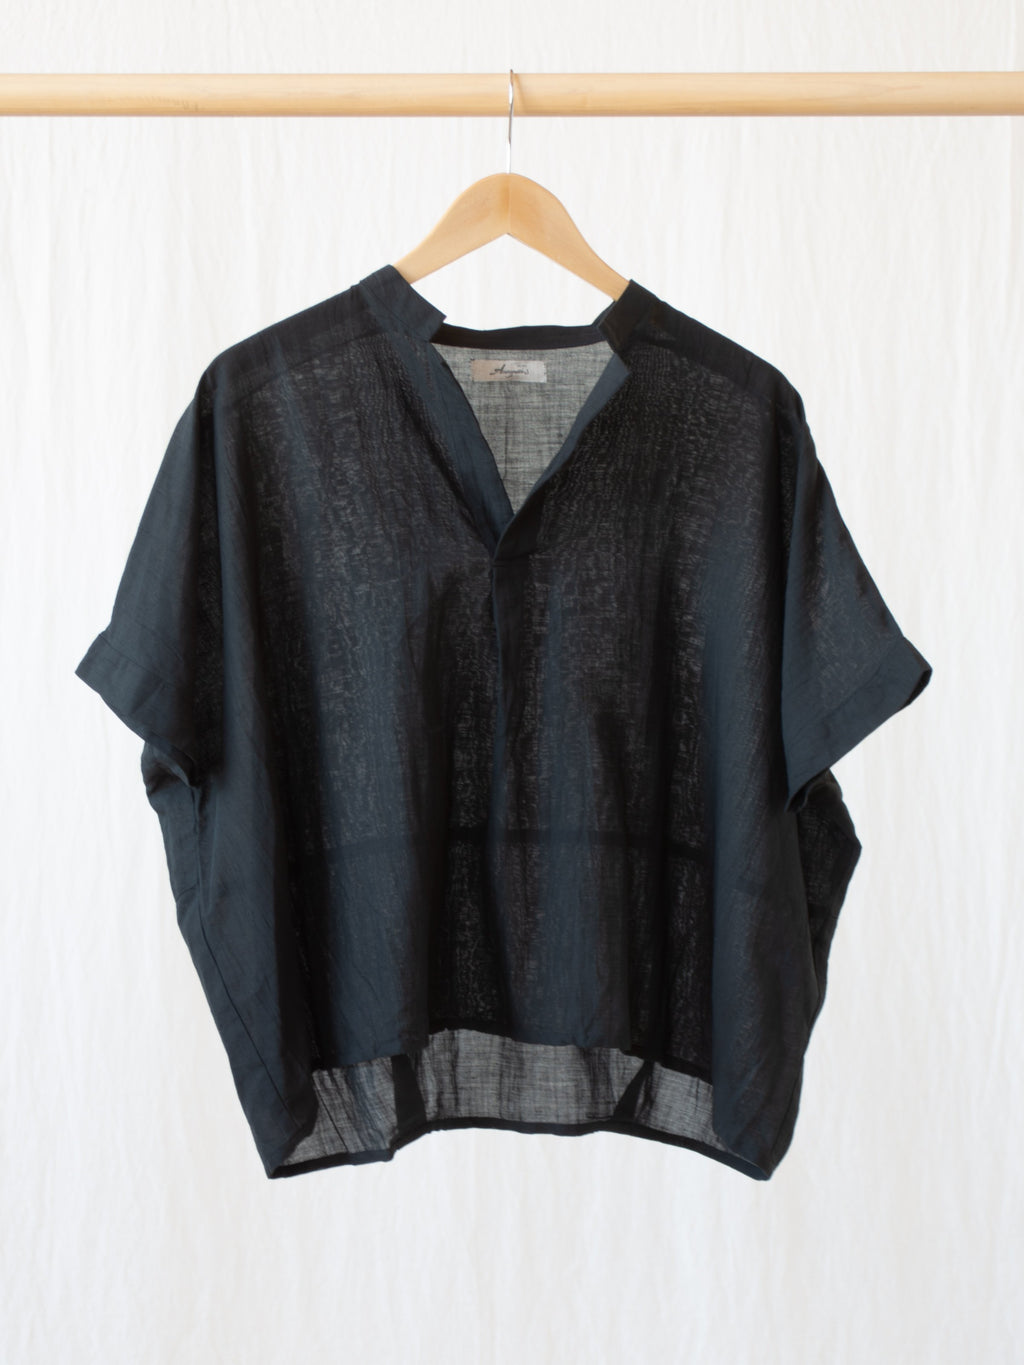 Namu Shop - Ichi Antiquites Cotton Linen Blouse - Black